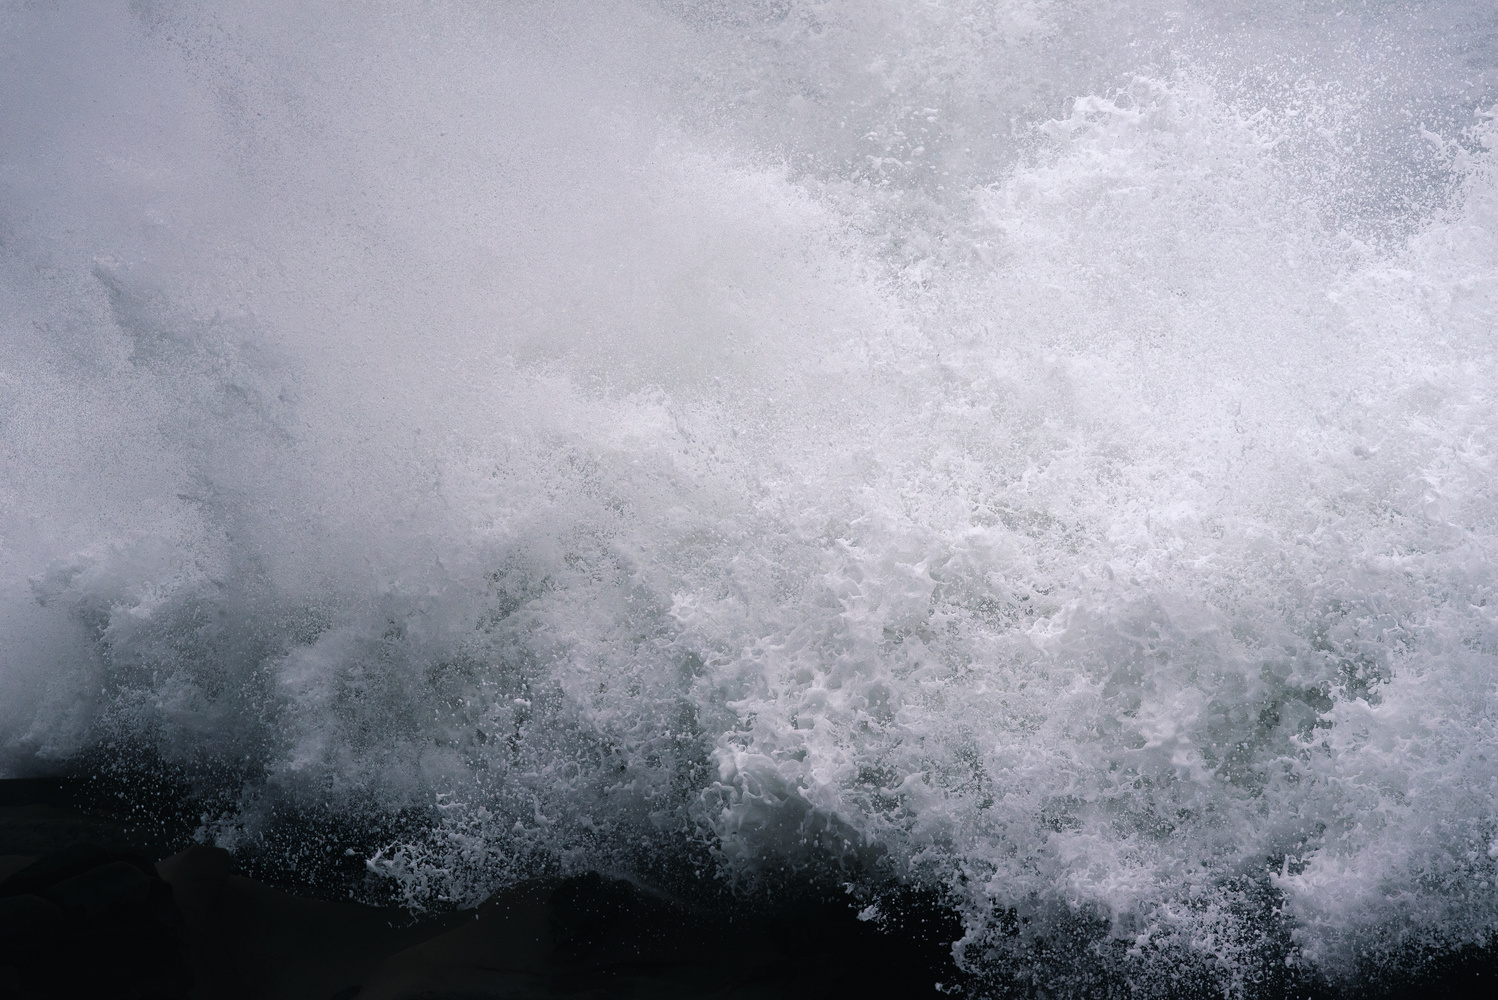 Foamy Waters by Compelling Imaging